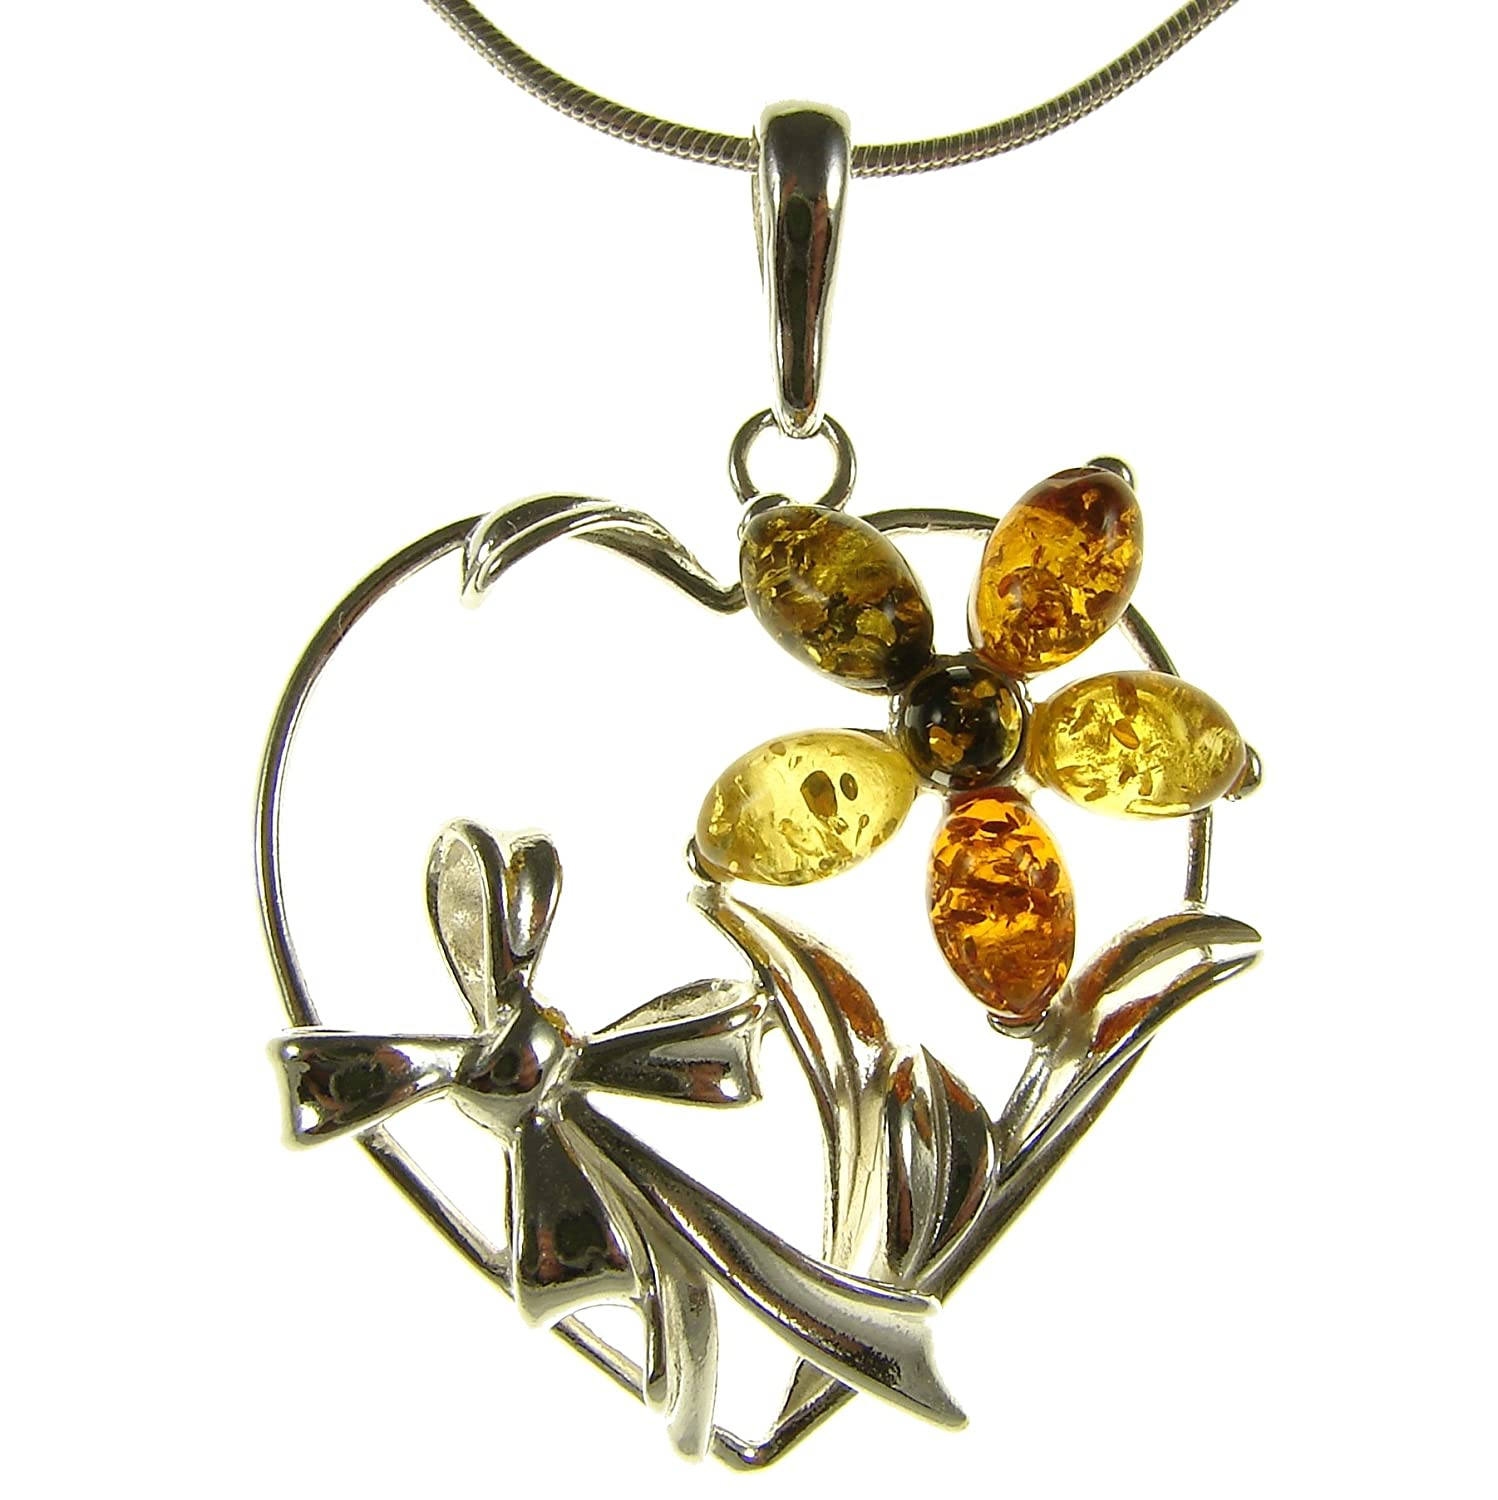 10 12 14 16 18 20 22 24 26 28 30 32 34 36 38 40 1mm ITALIAN SNAKE CHAIN Baltic amber and sterling silver 925 designer multi-coloured flower leaf pendant necklace